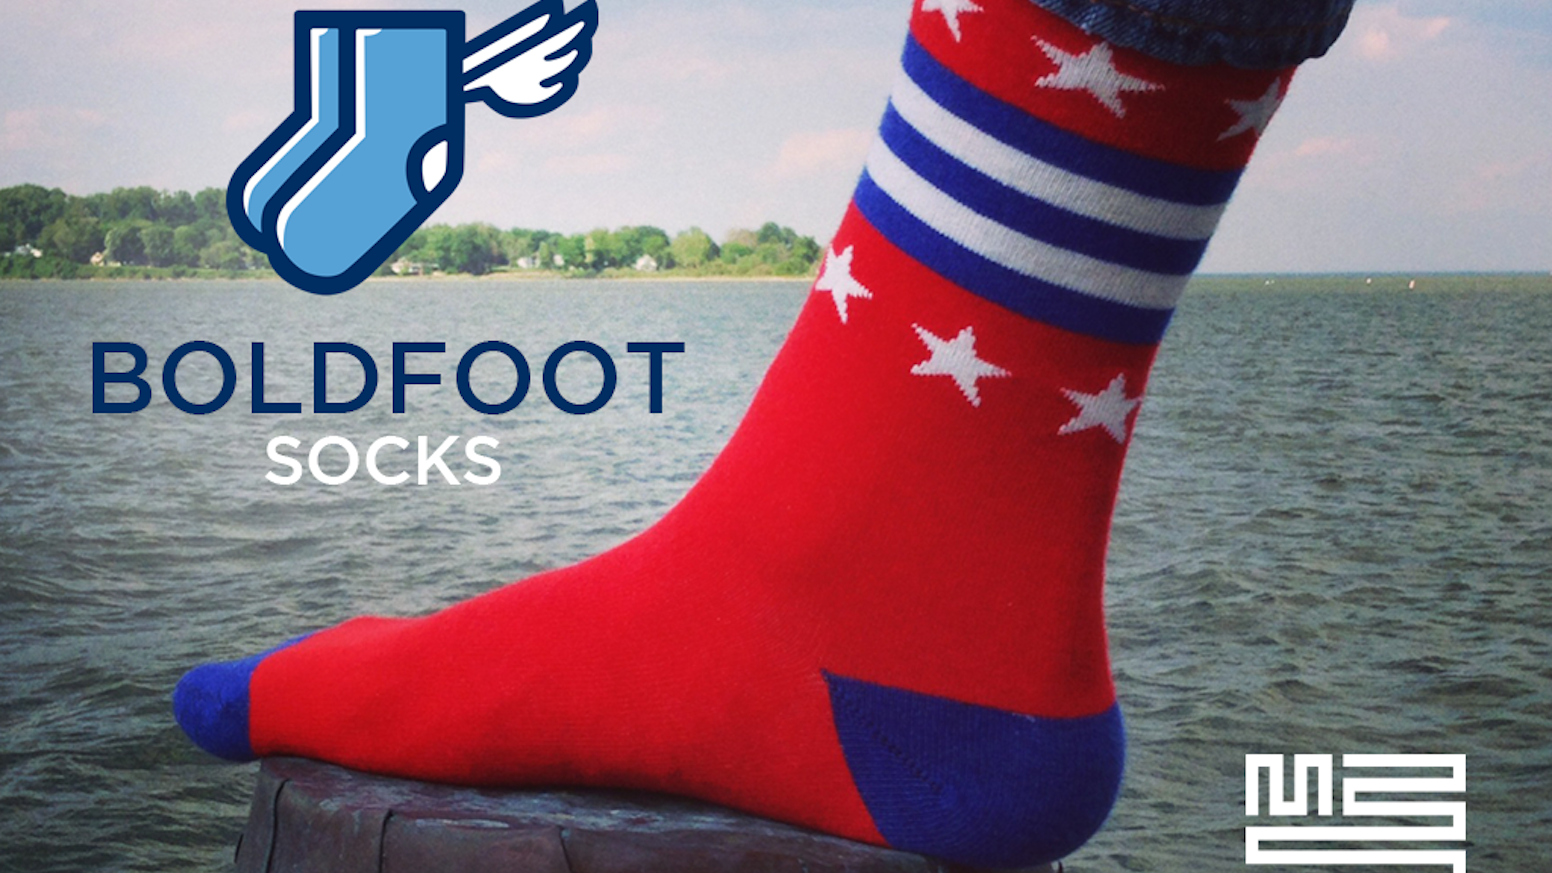 Awesome socks for men & women, proudly made in America. Comfort and quality you can count on (with free sock insurance just in case).